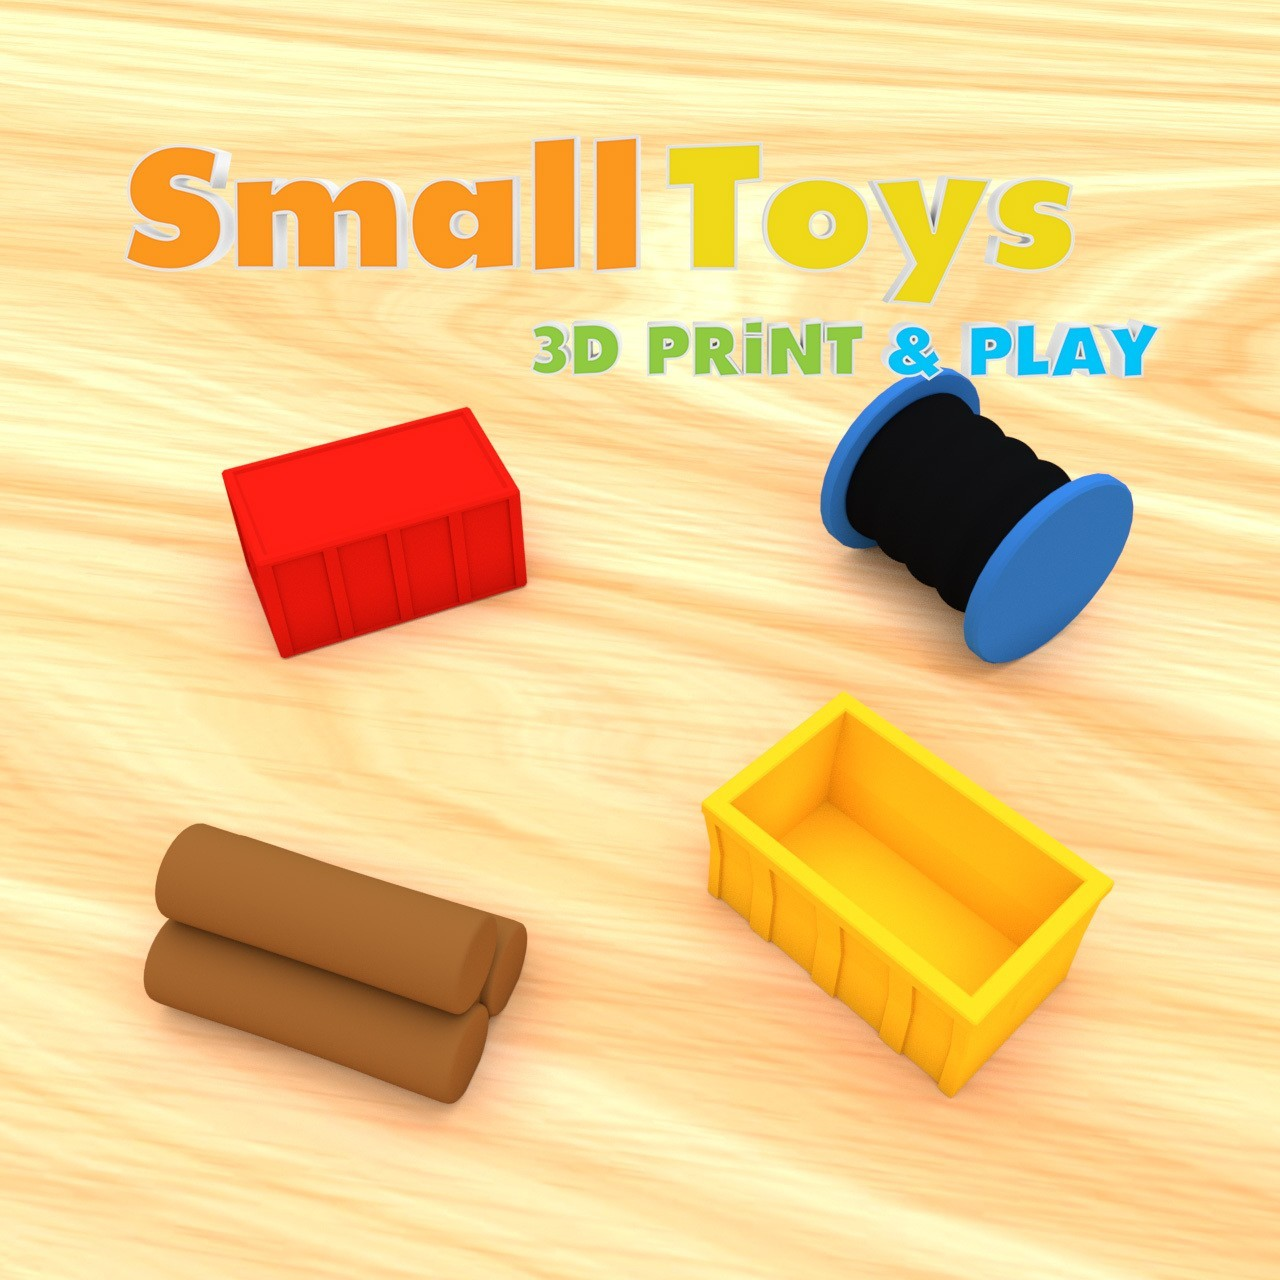 smalltoys-freight-accessories01.jpg Download free STL file SmallToys - Freight Accessories • 3D print template, Wabby